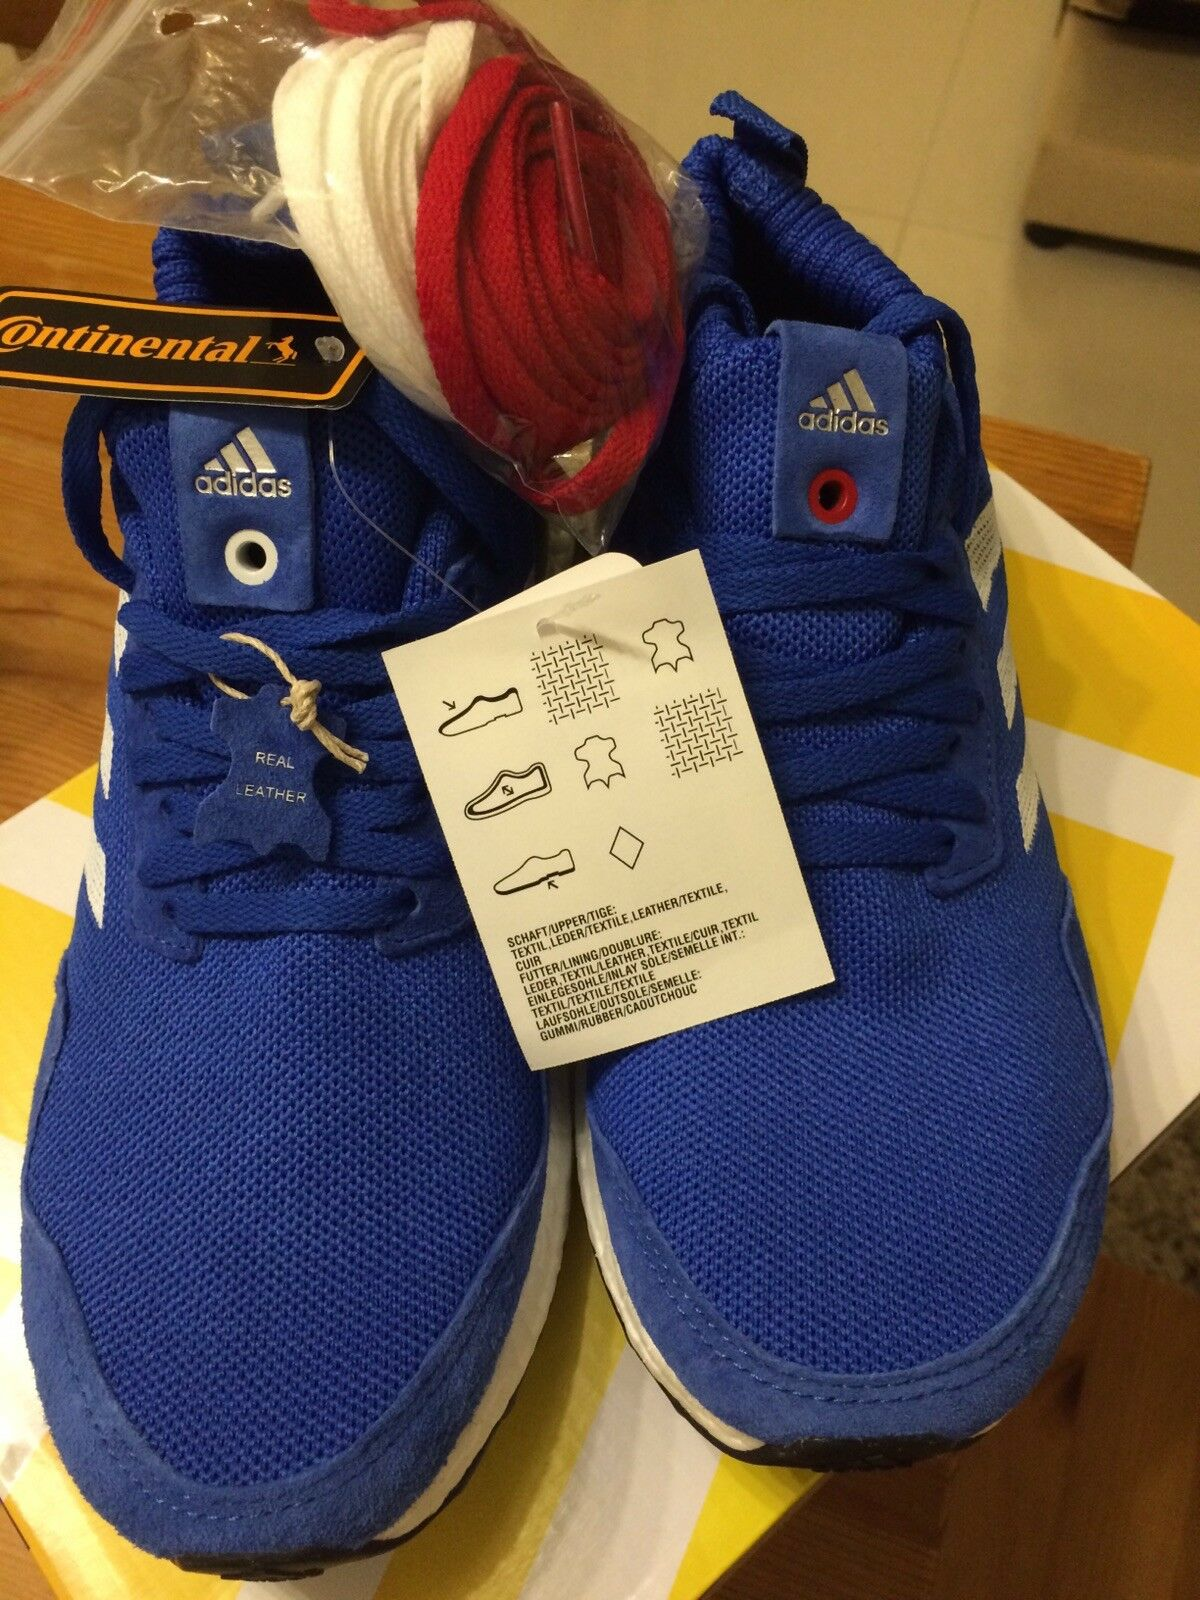 Adidas ULTRA BOOST MID 'RUN THRU TIME' - Blau - BY3056 US5.5  UK5 Real Leather